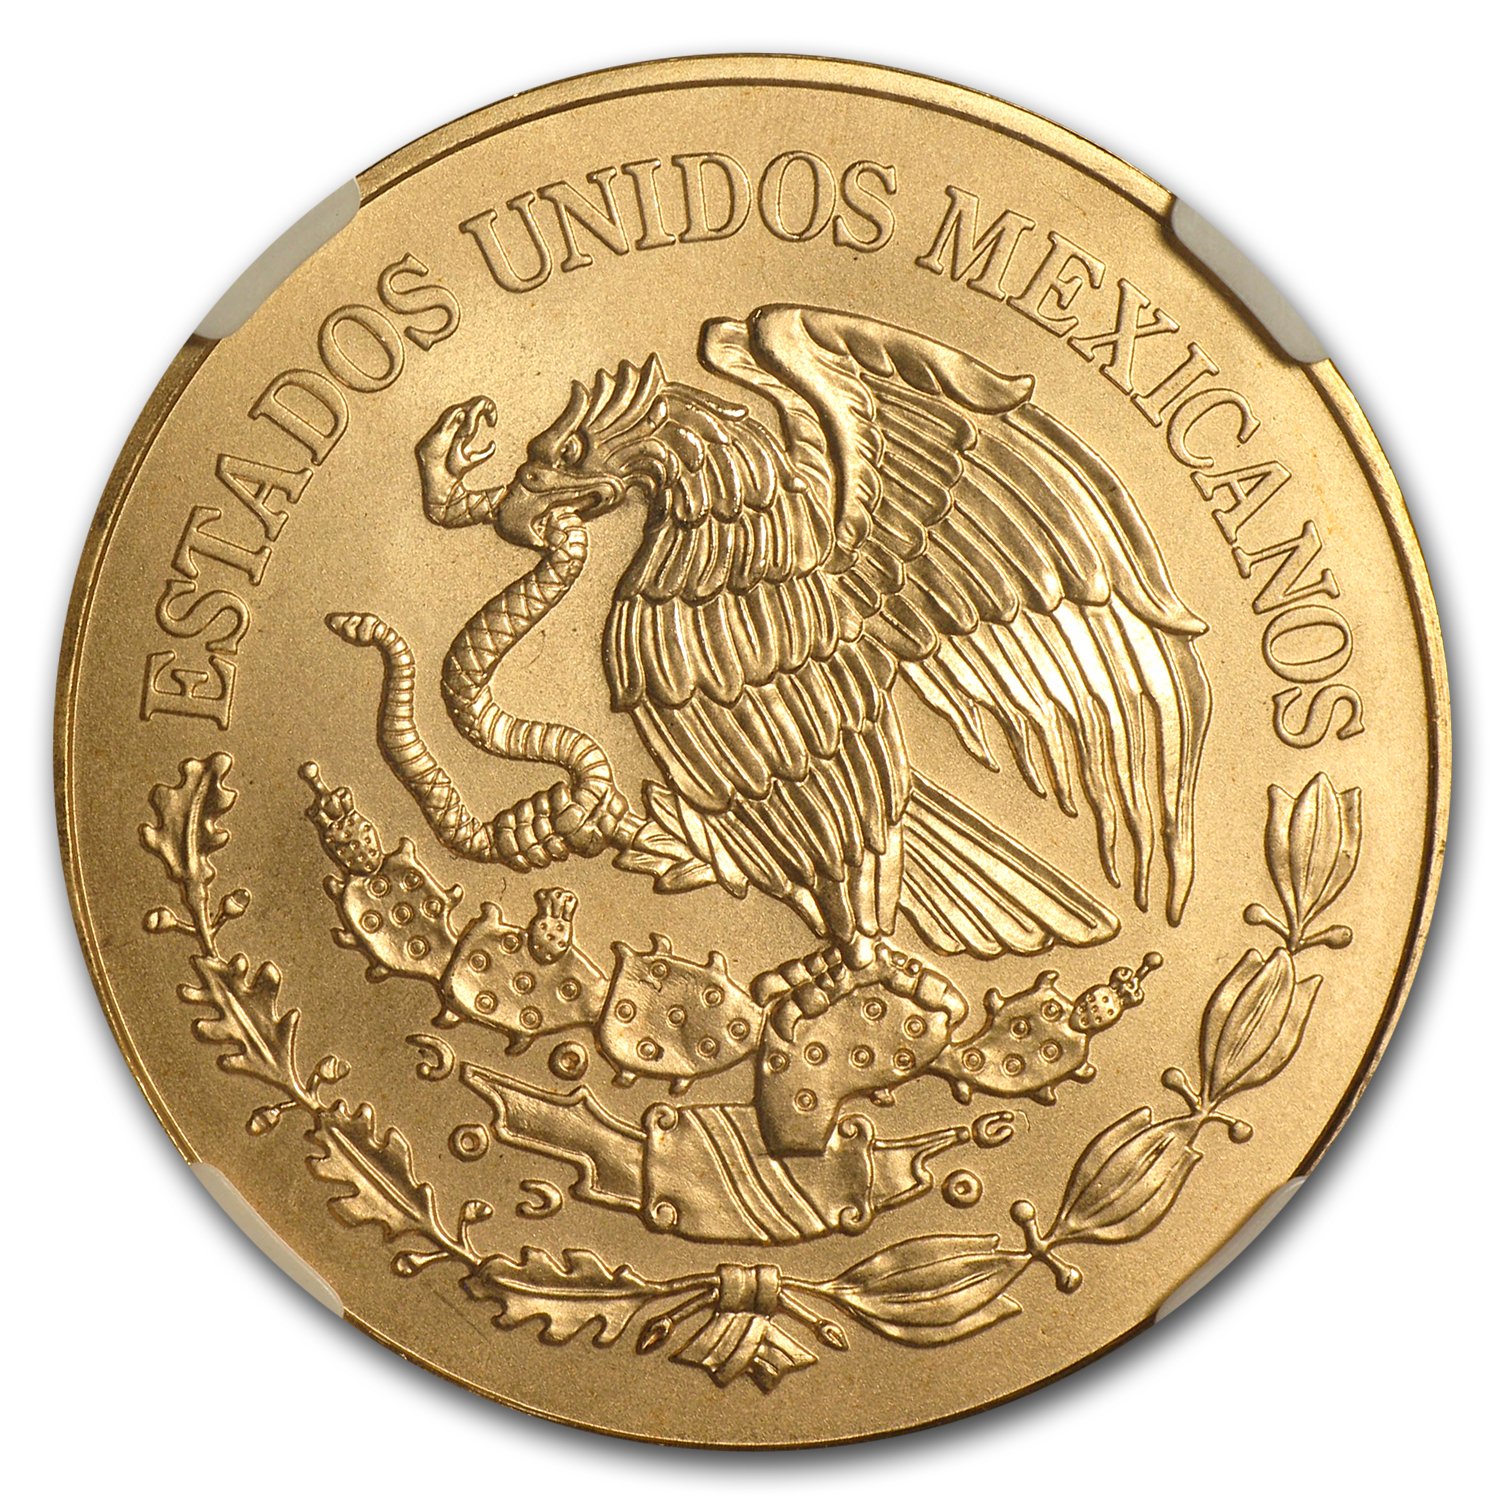 2010 Gold 200 Pesos Mexican Bicentenary Commemorative MS-70 NGC